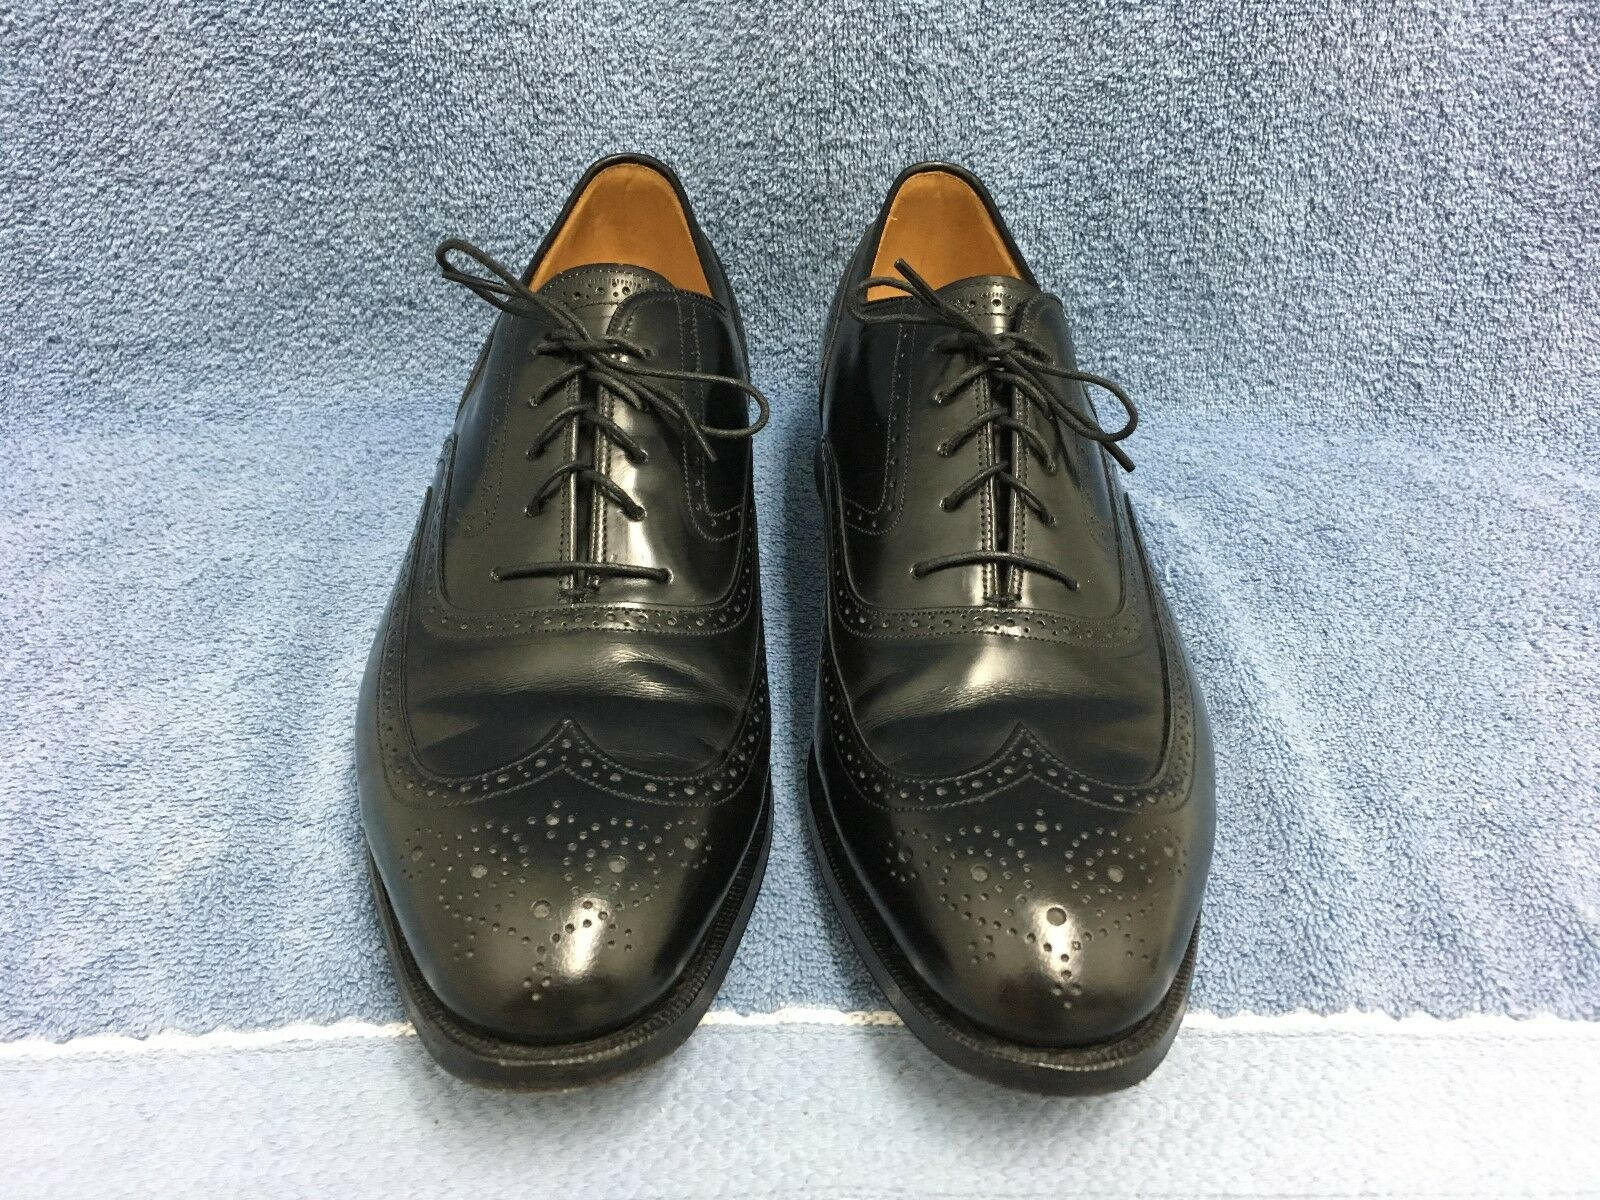 JOHNSTON & MURPHY LIMITED WING TIP OXFORD SHOES MEN'S SIZE 10 1/2 C USA EUC